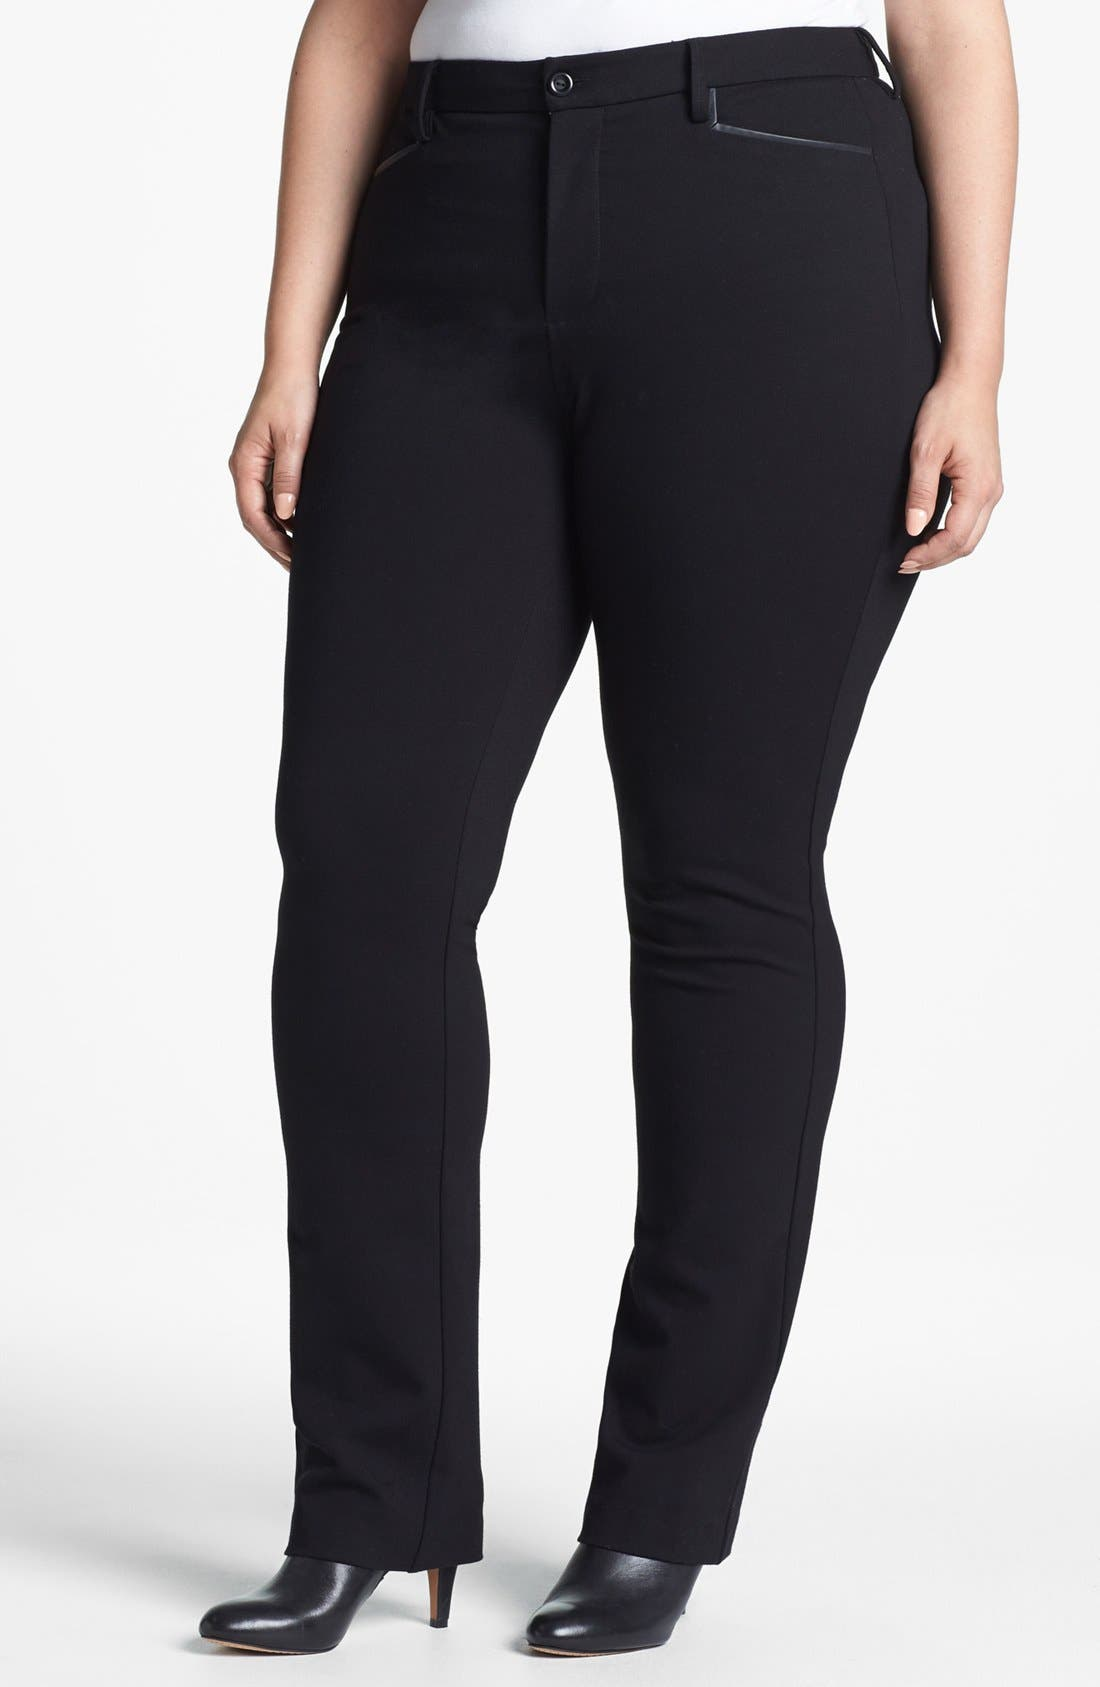 Alternate Image 1 Selected - NYDJ Faux Leather Trim Stretch Ponte Pants (Plus Size)